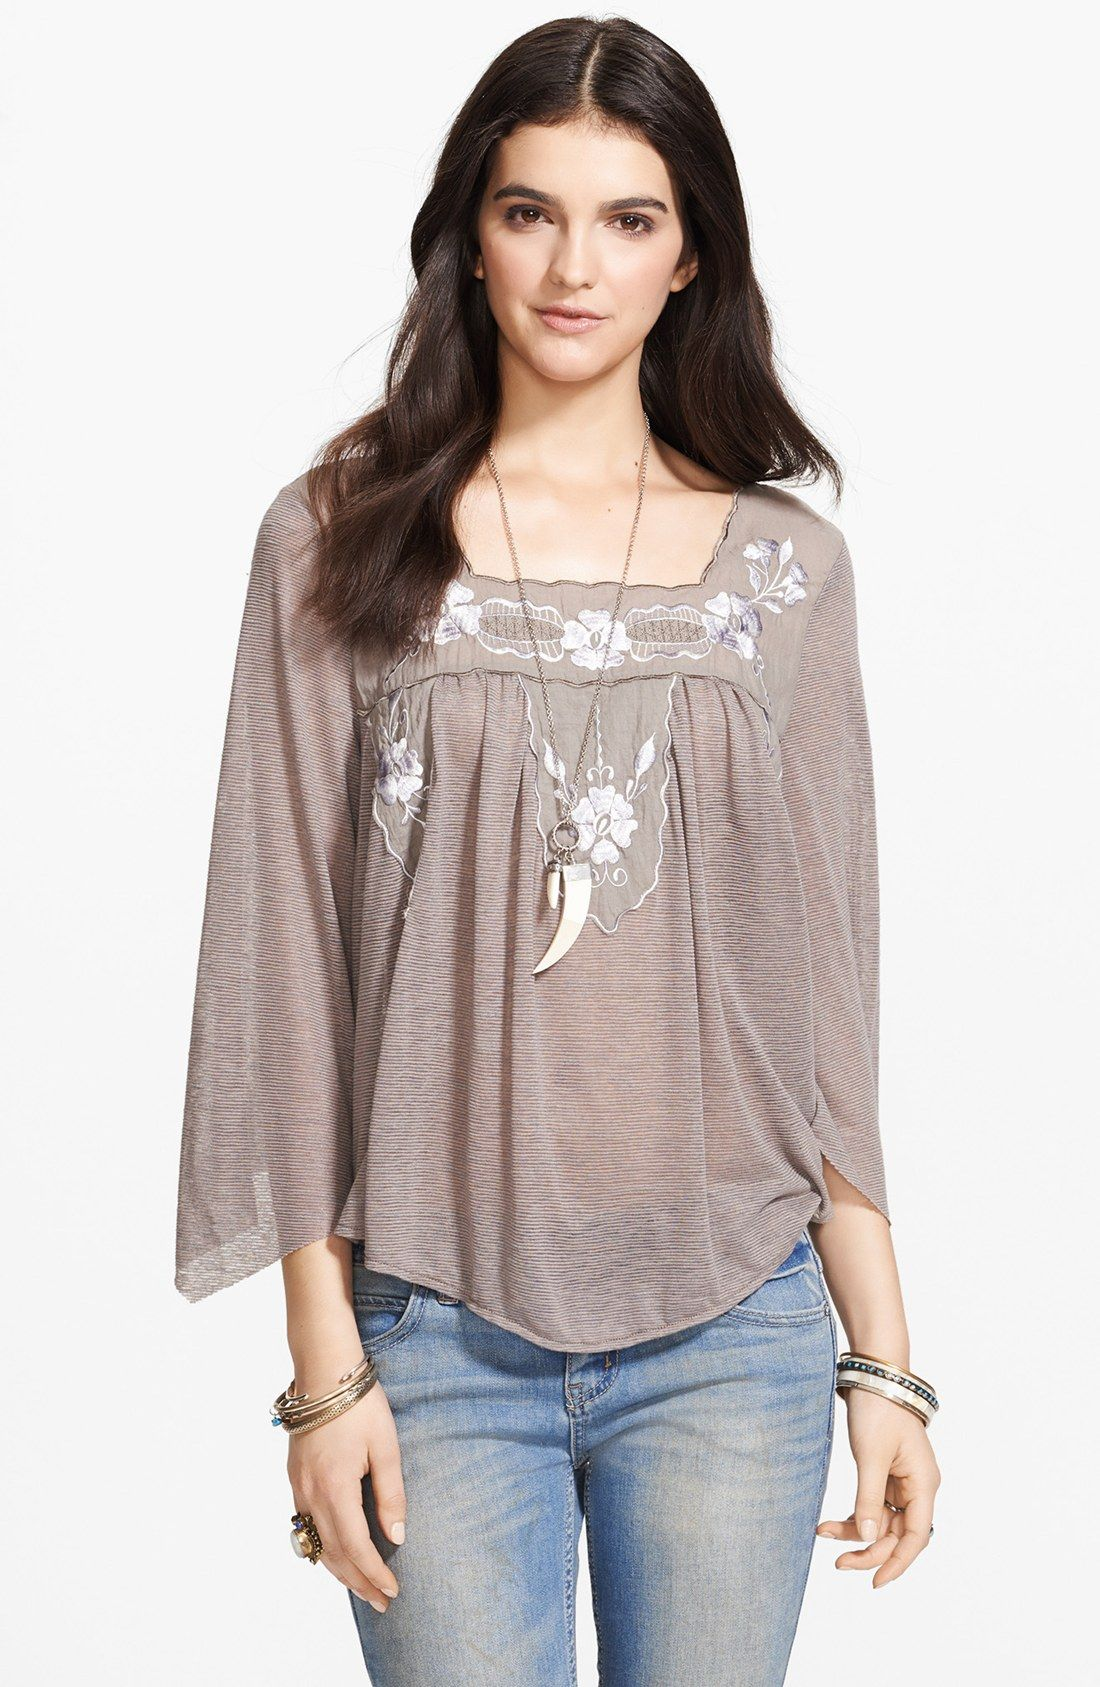 embroidery crochet peasant tops - Google Search